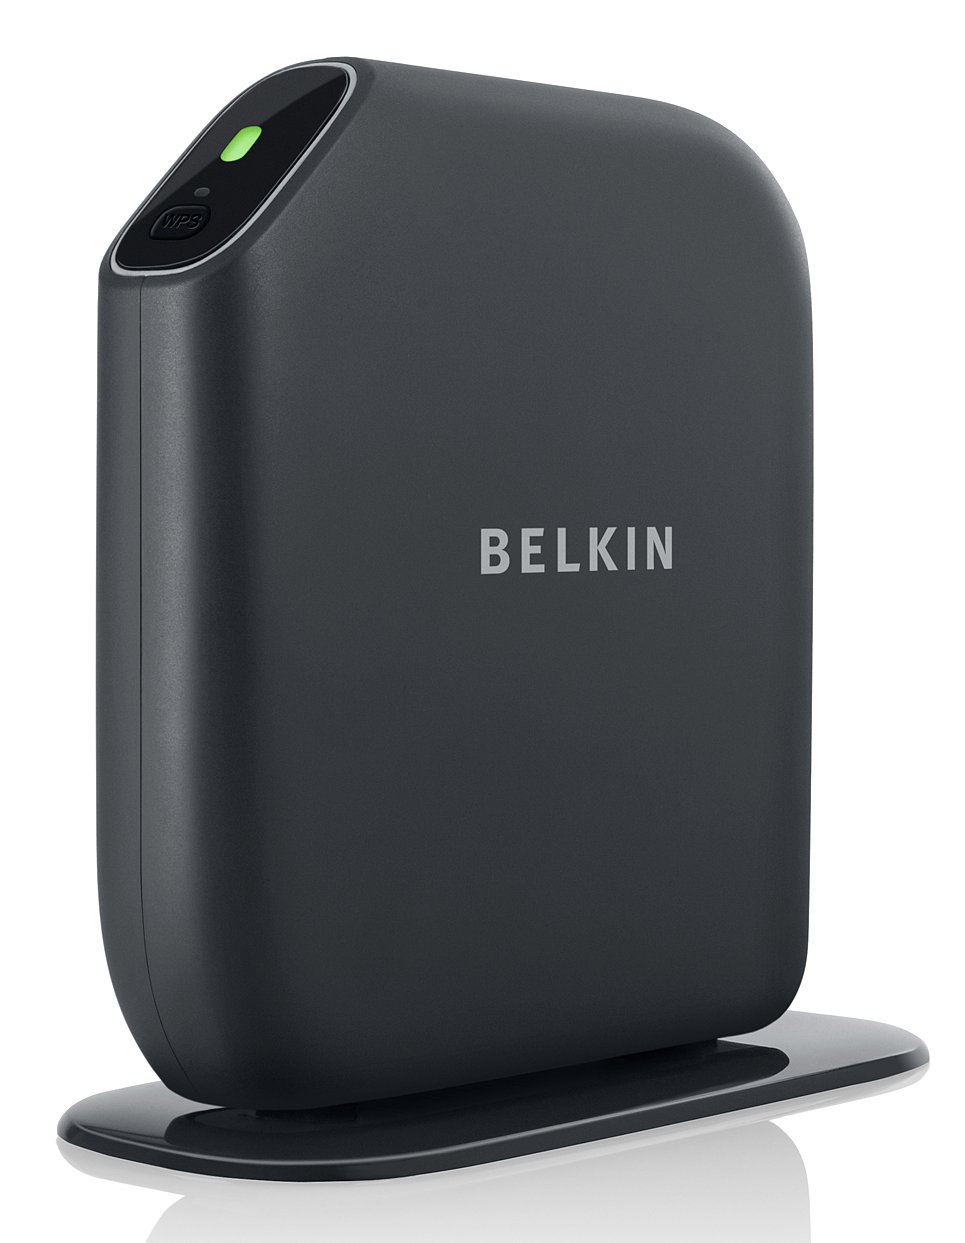 Belkin Playmax WLAN Dual-Band N+ Router schwarz: Amazon.de: Computer ...